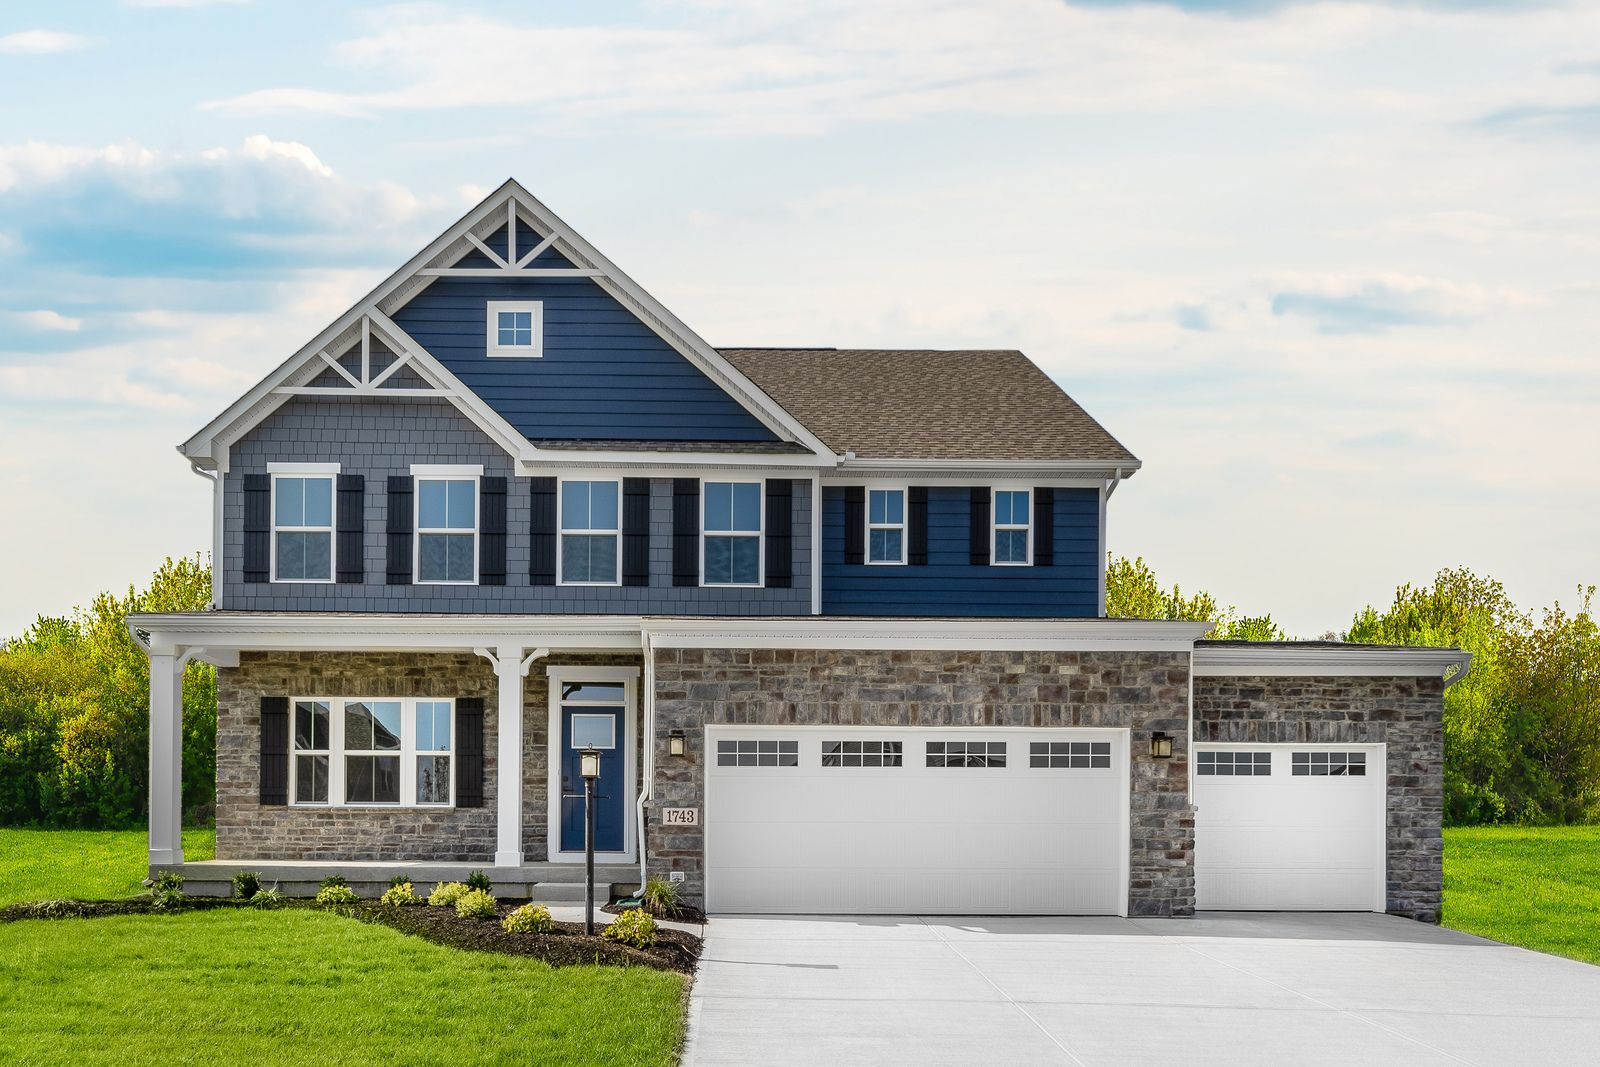 Noelting Estates: 1/2 Acre Homesites:Click here to schedule your visit to choose your homesite in our new section. Featuring wooded and tree-lined homesites with up to a ½ acre+ plus optional 3-car garages & basements!